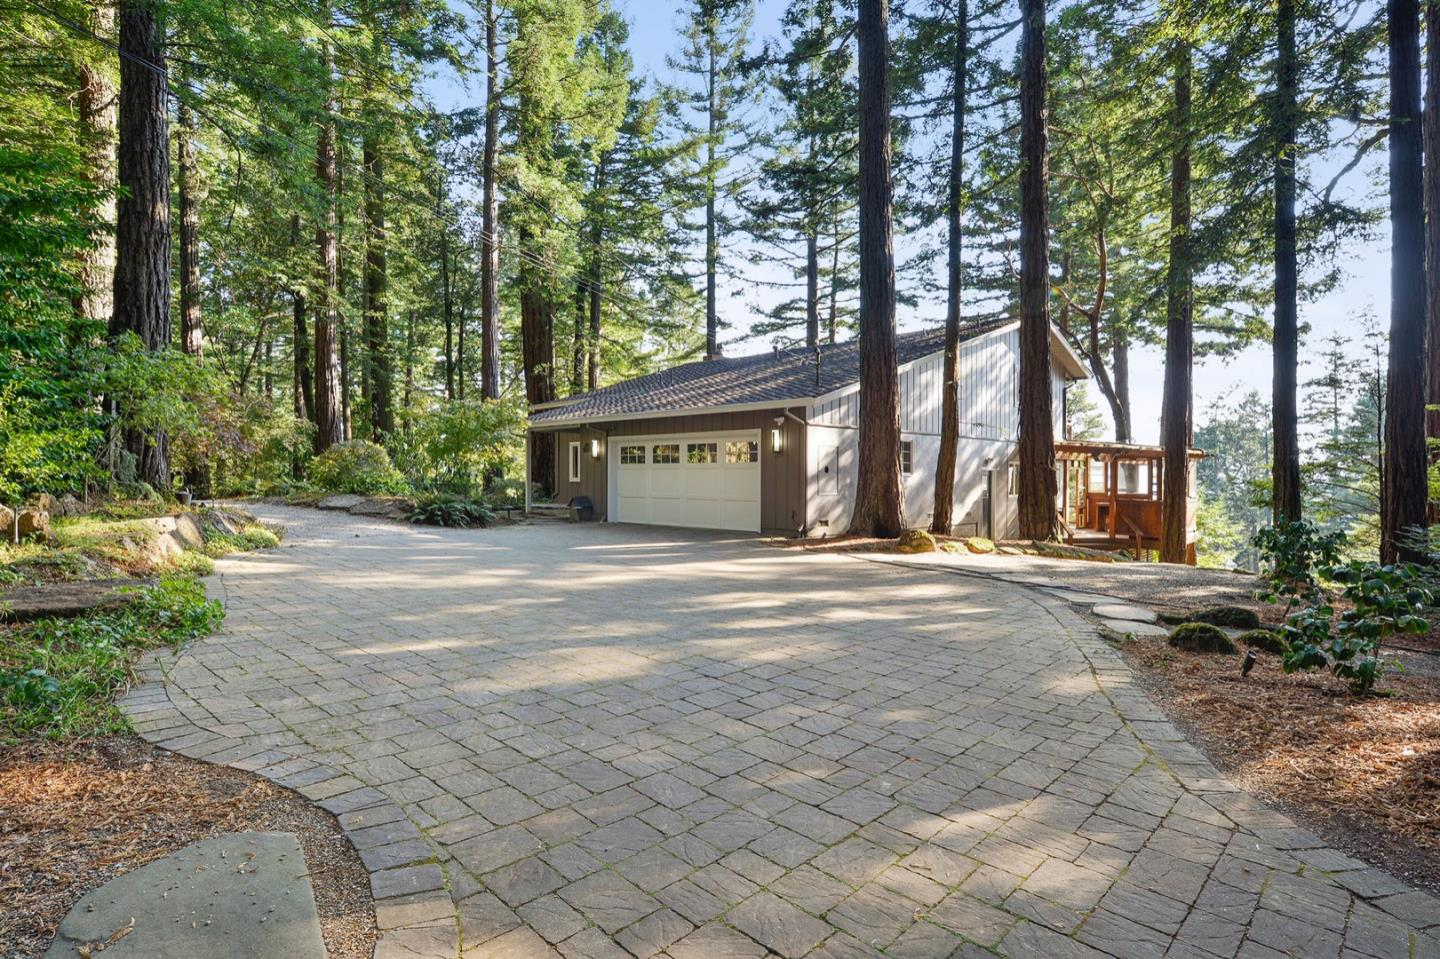 13240 SKYLINE BLVD, WOODSIDE, CA 94062